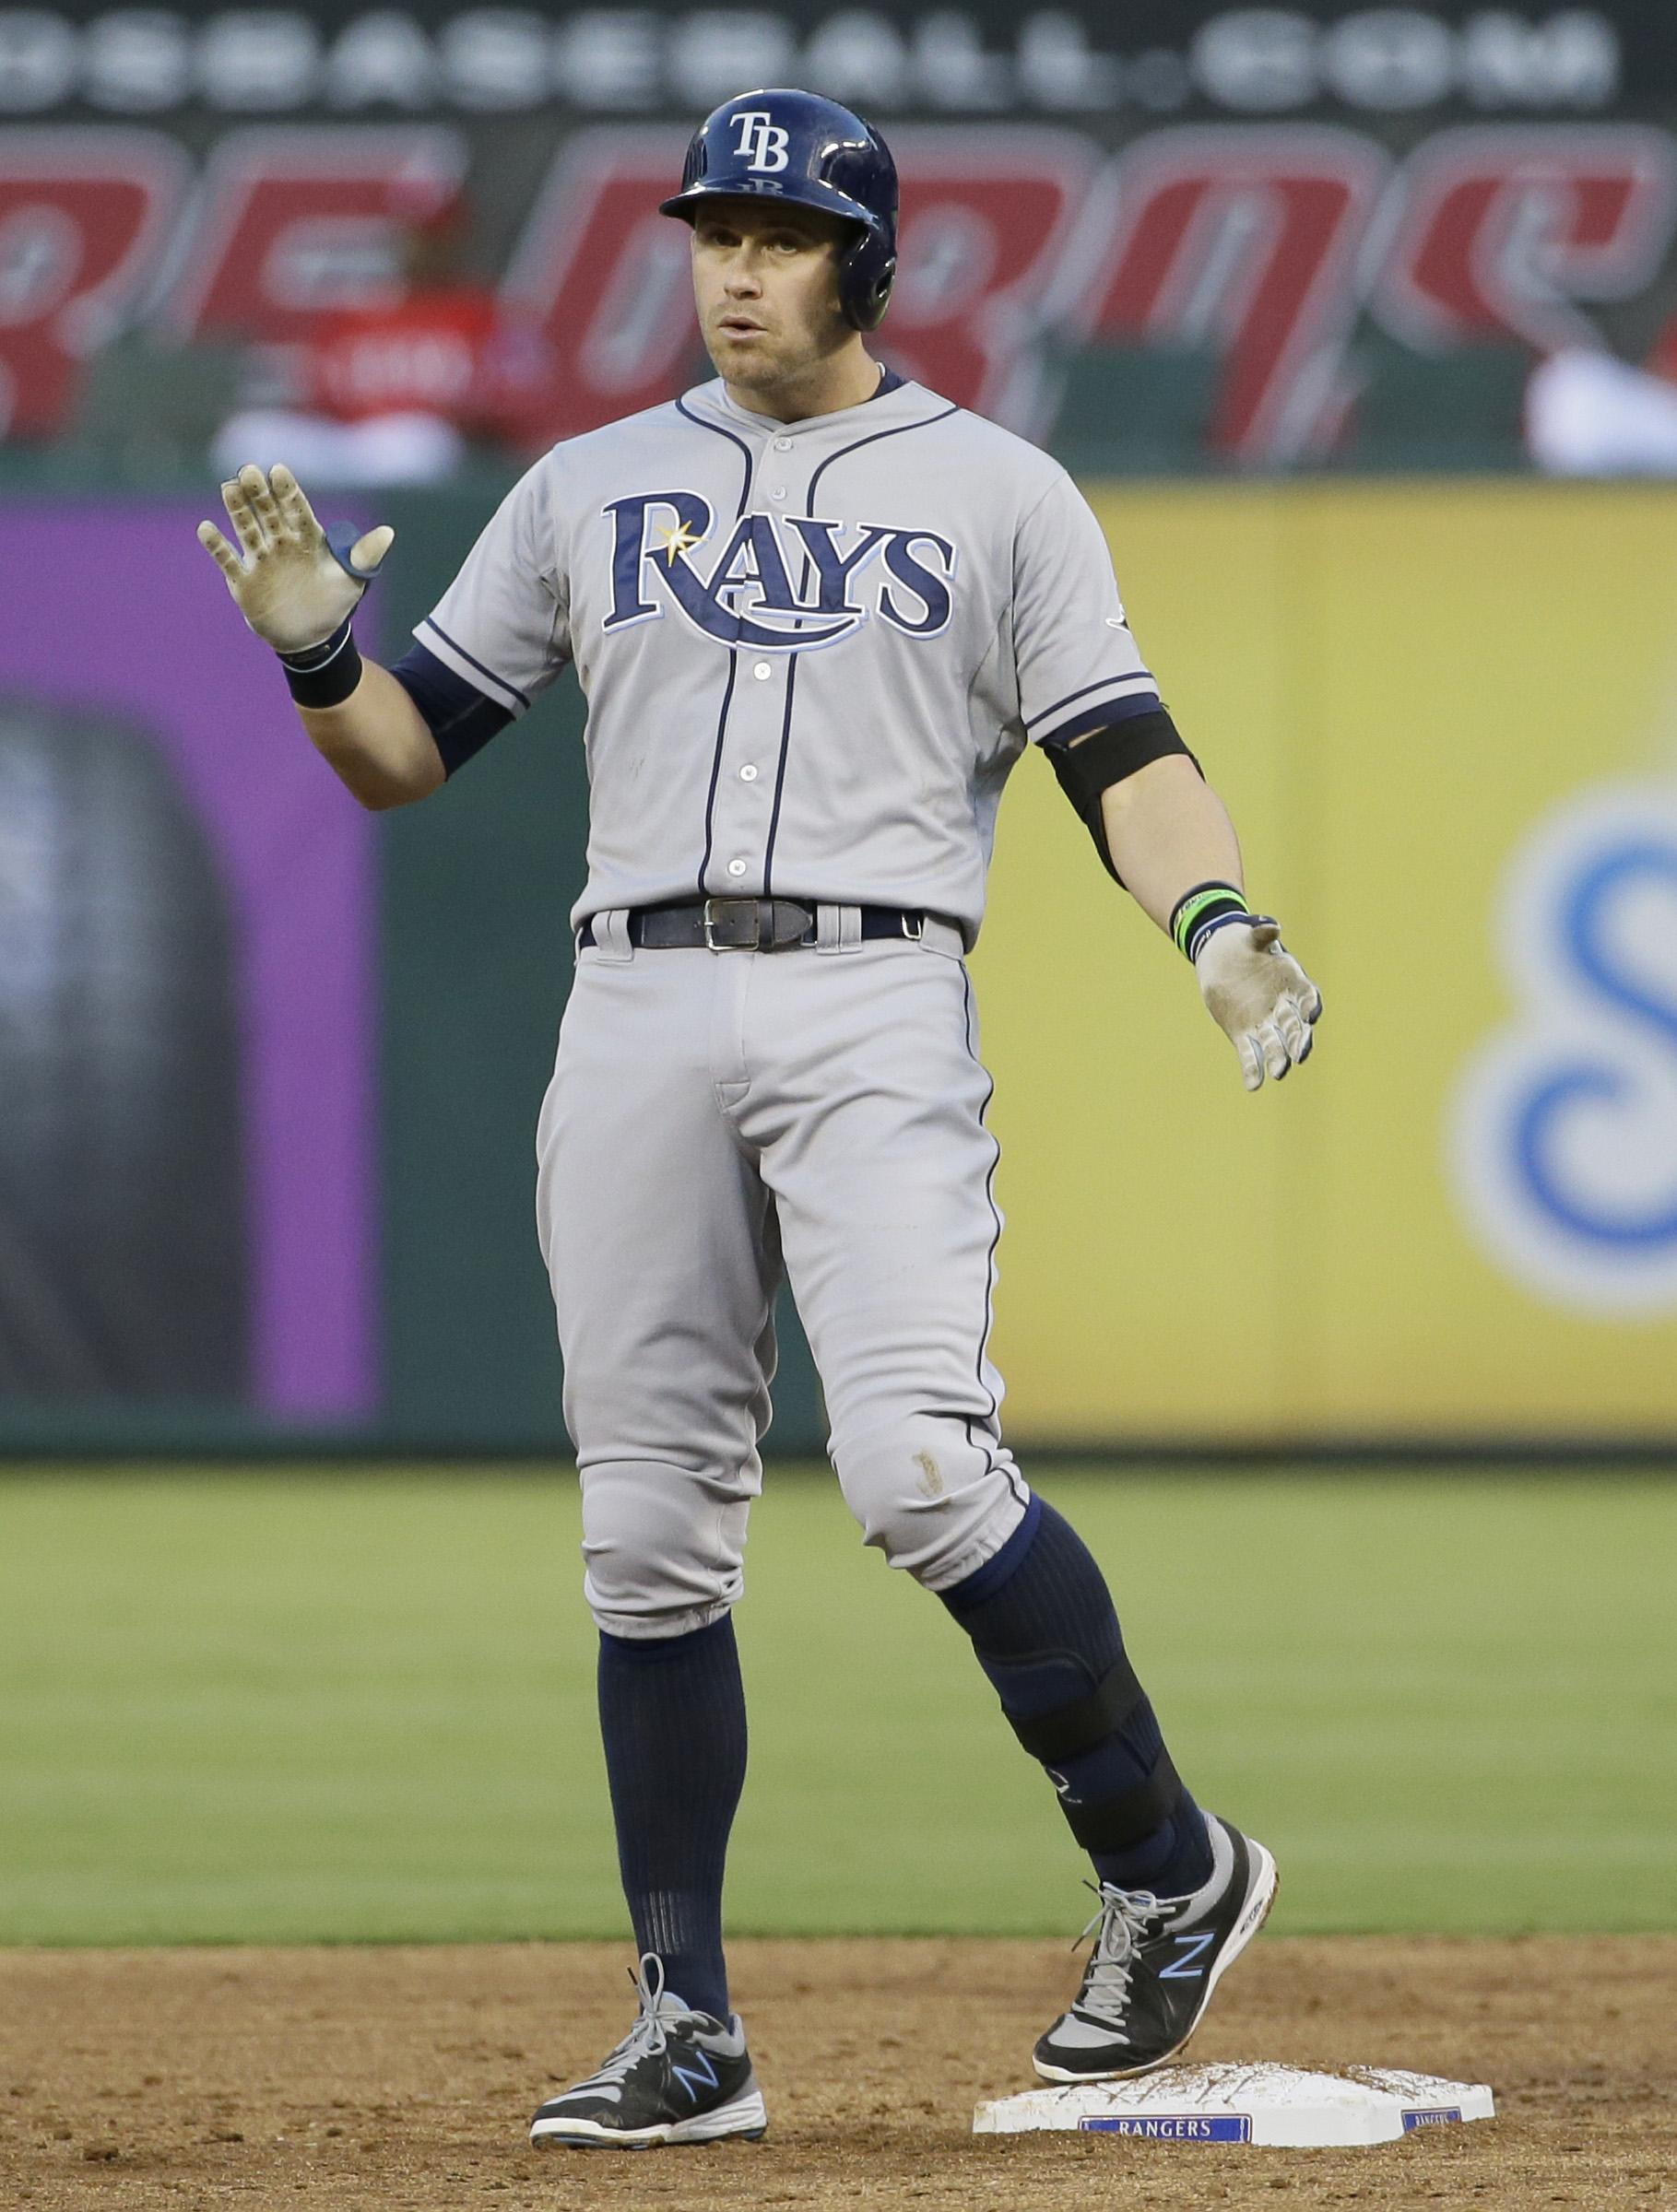 Tampa Bay Rays Evan Longoria stands on second base after hitting an RBI double during the third inning of a baseball game against the Texas Rangers in Arlington, Texas, Friday, Aug. 14, 2015. Rays Curt Casali and Brandon Guyer scored on the play. (AP Phot